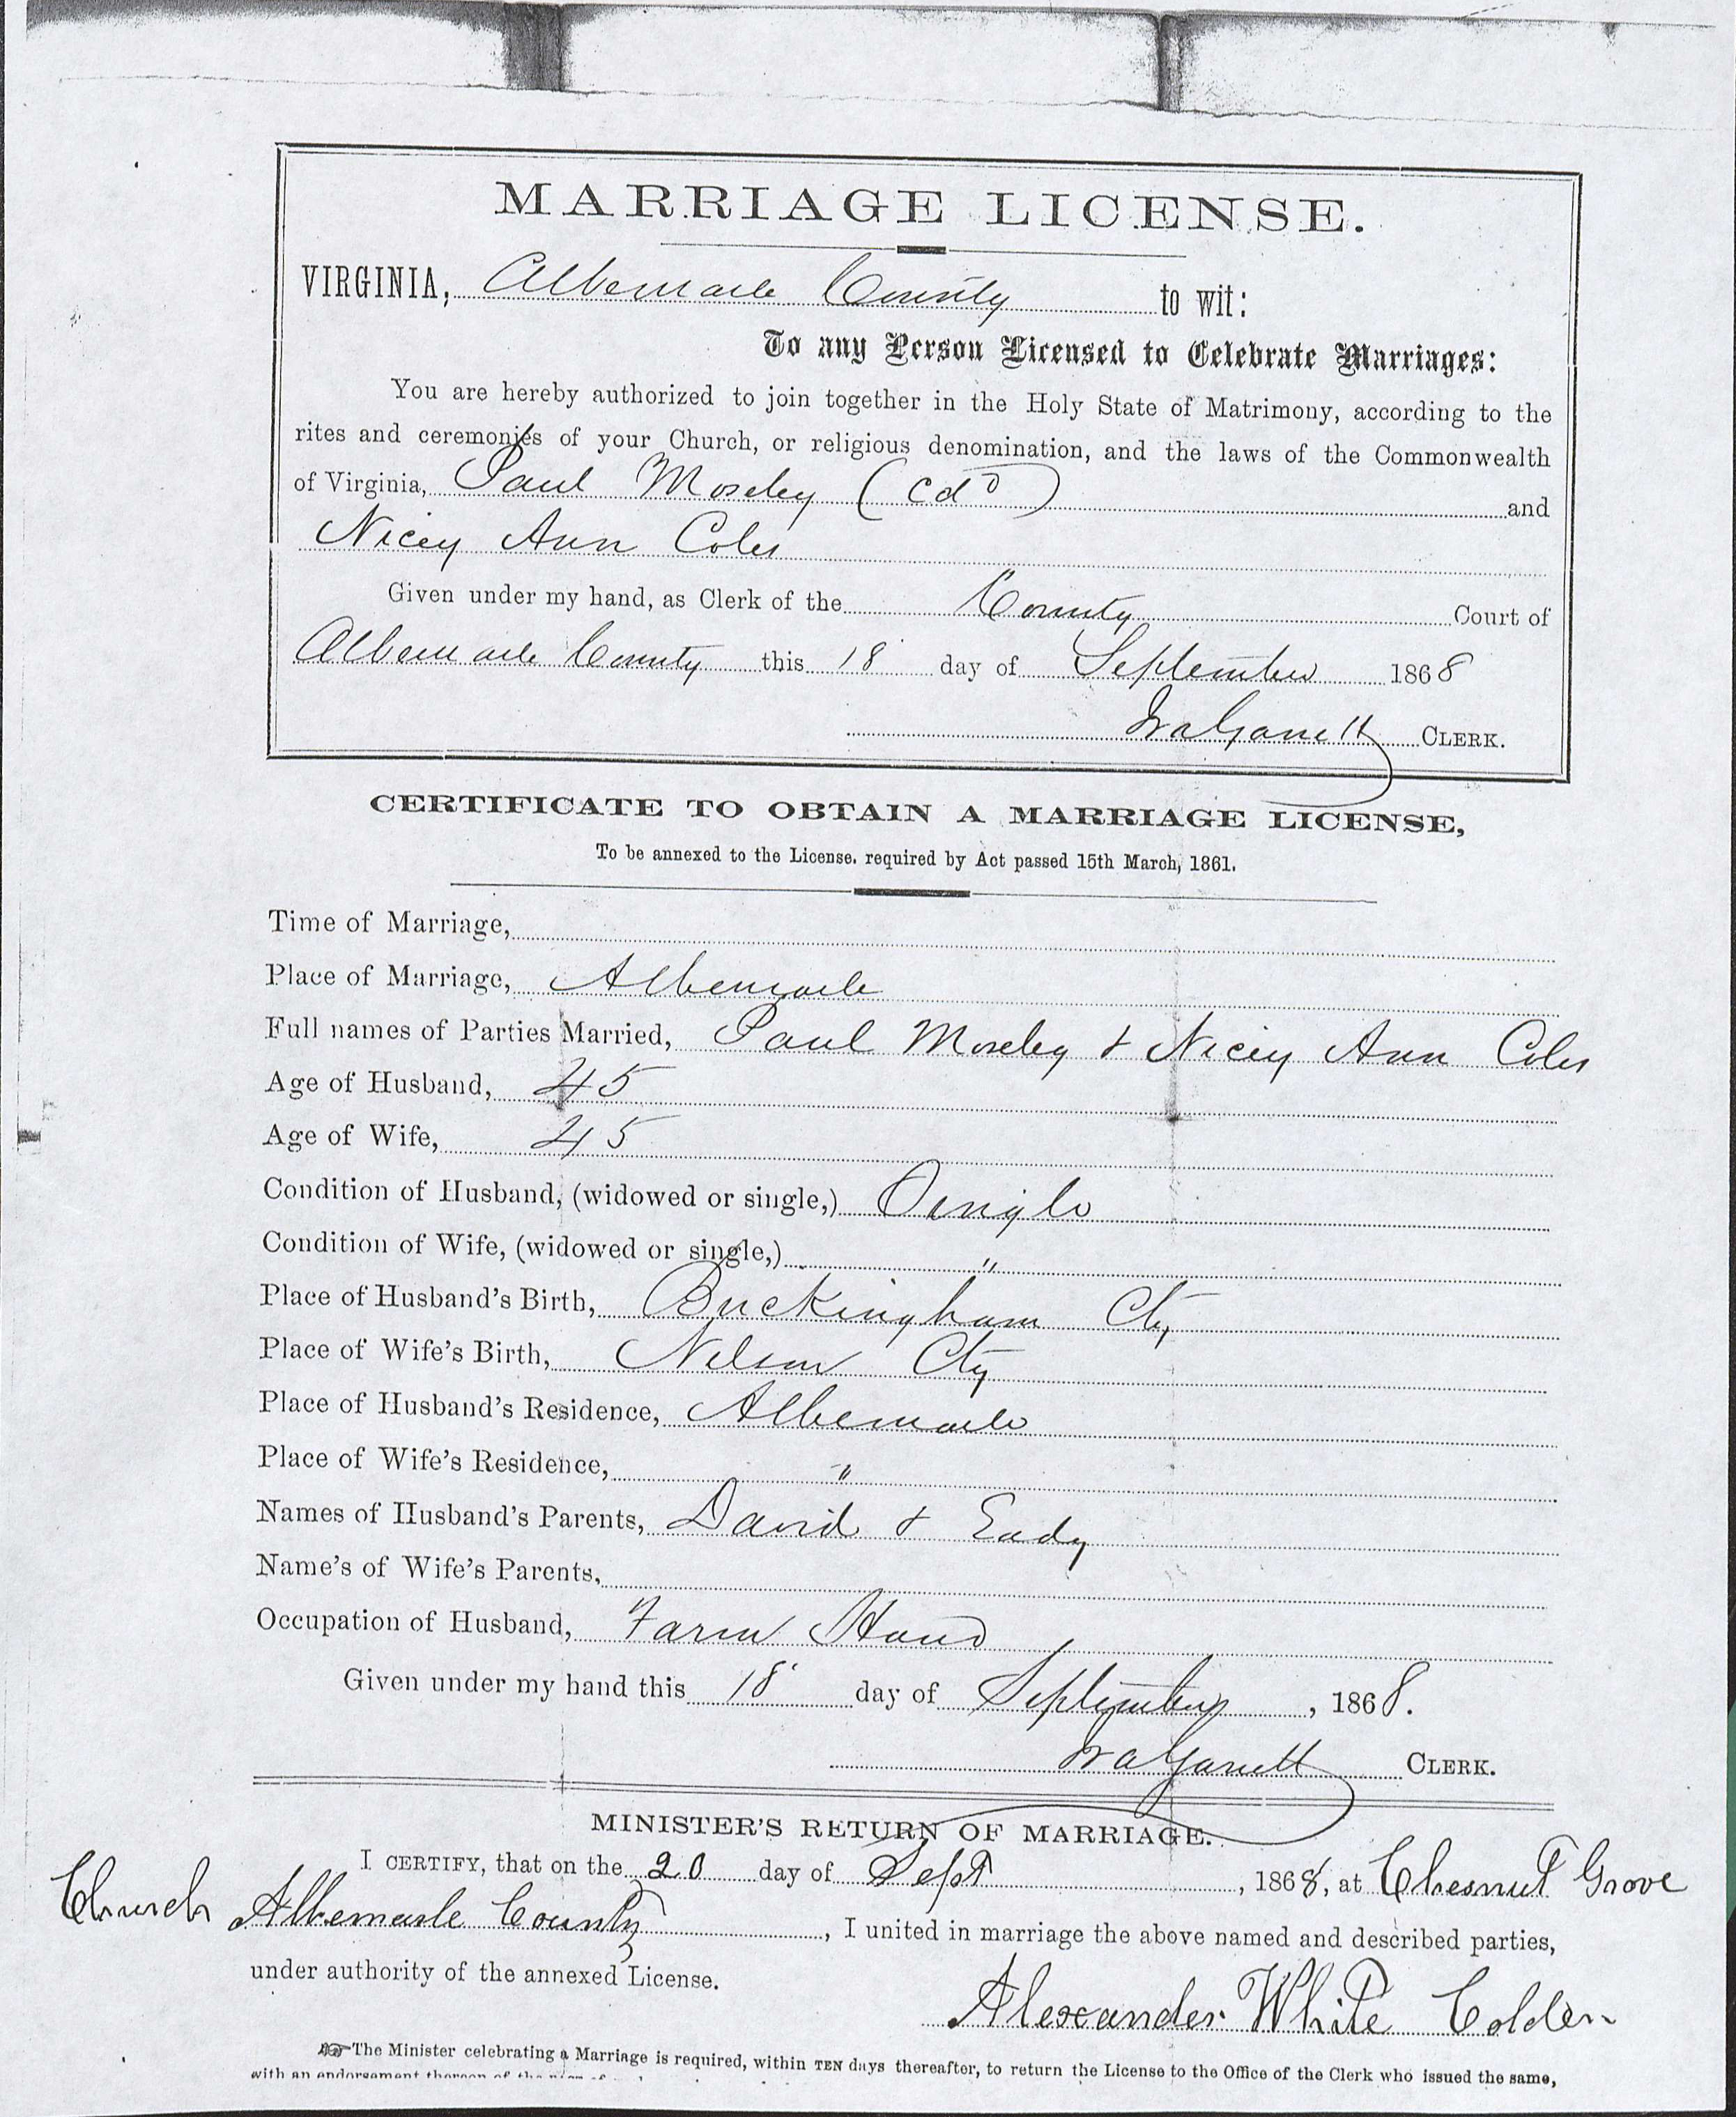 Marriage license of Nicey Ann Coles and Paul Moseley, September 18, 1868. Courtesy of the Albemarle County Courthouse, Charlottesville, Virginia, 22902 (Image by Regina Rush)